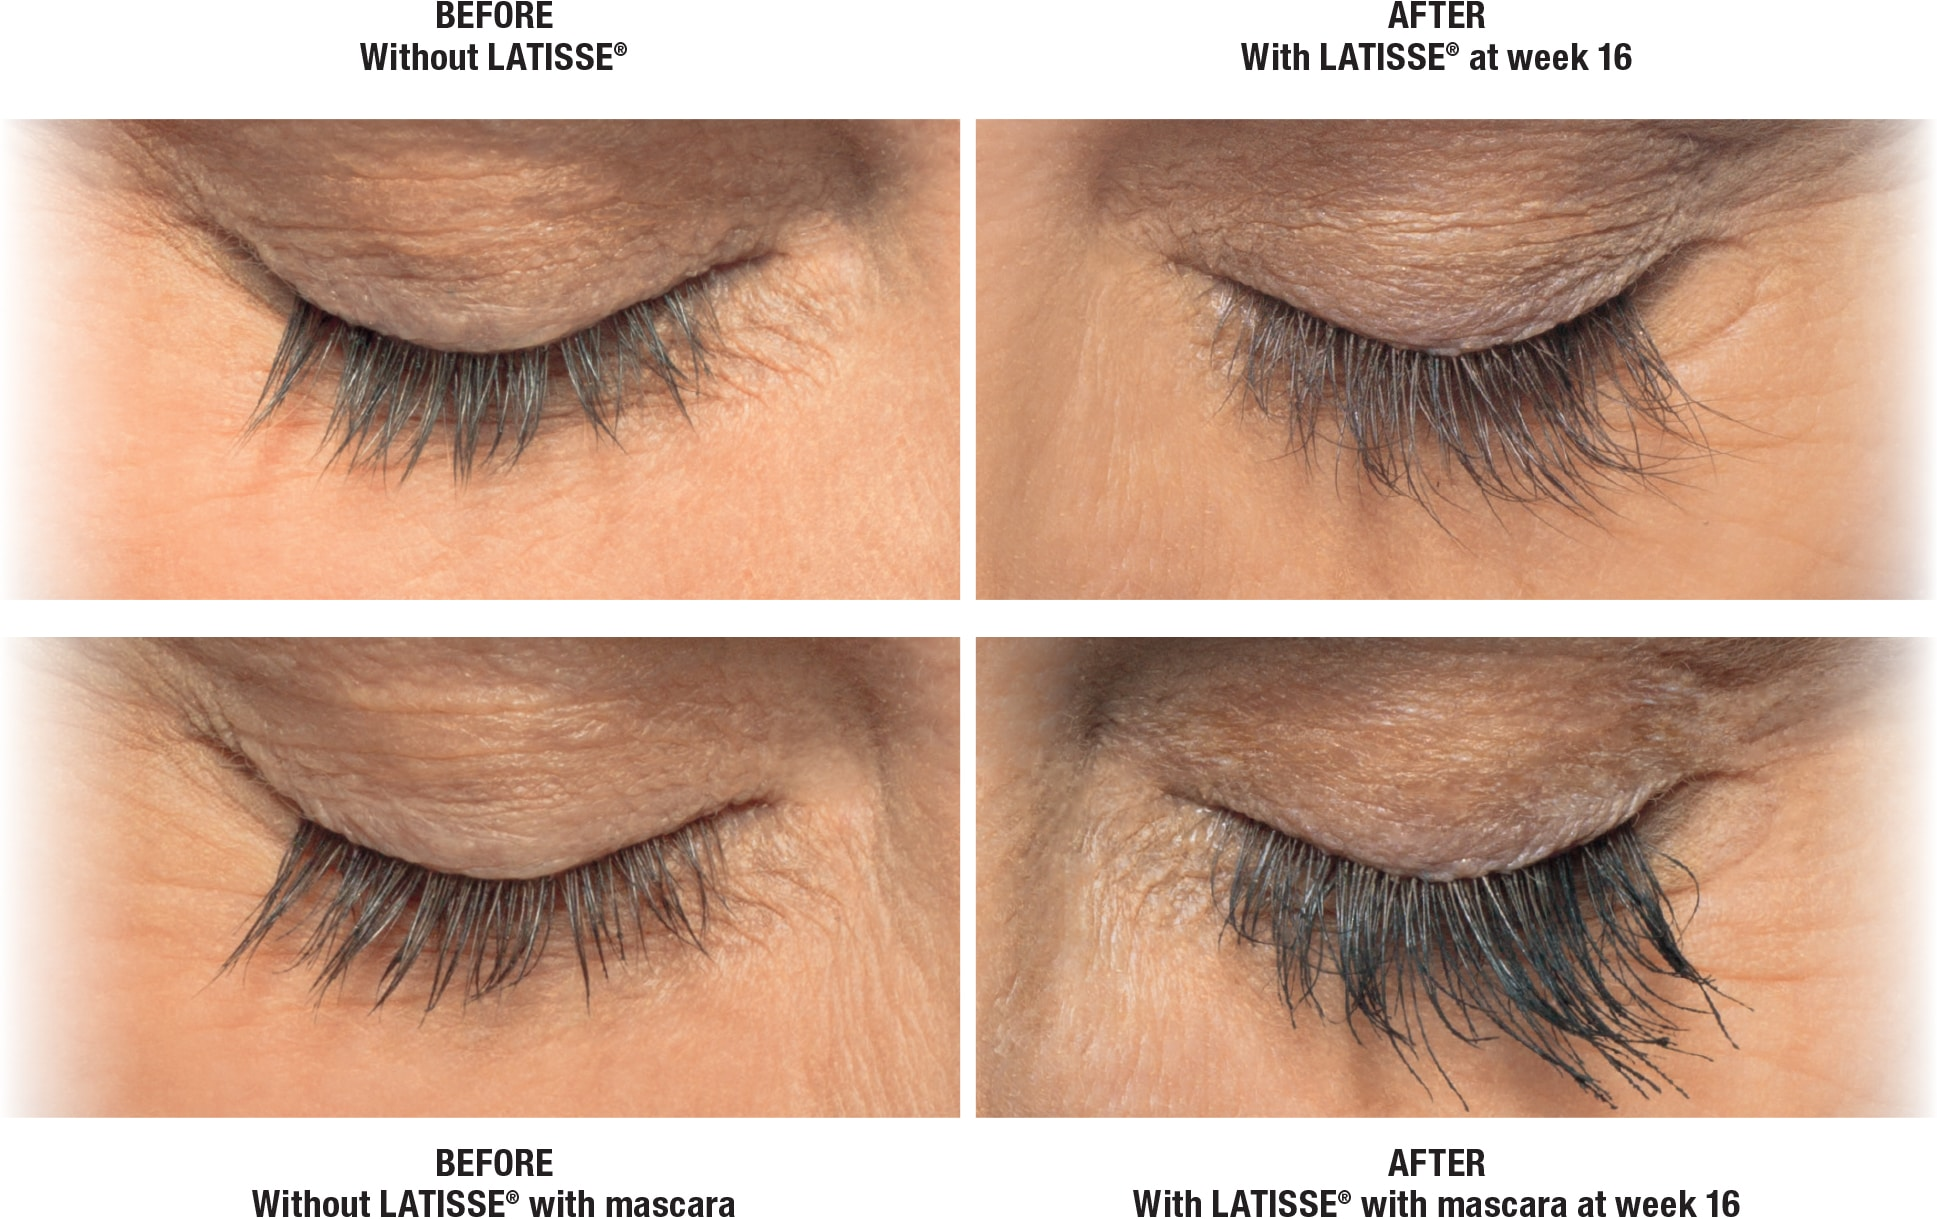 Image of Victoria before and after using Latisse